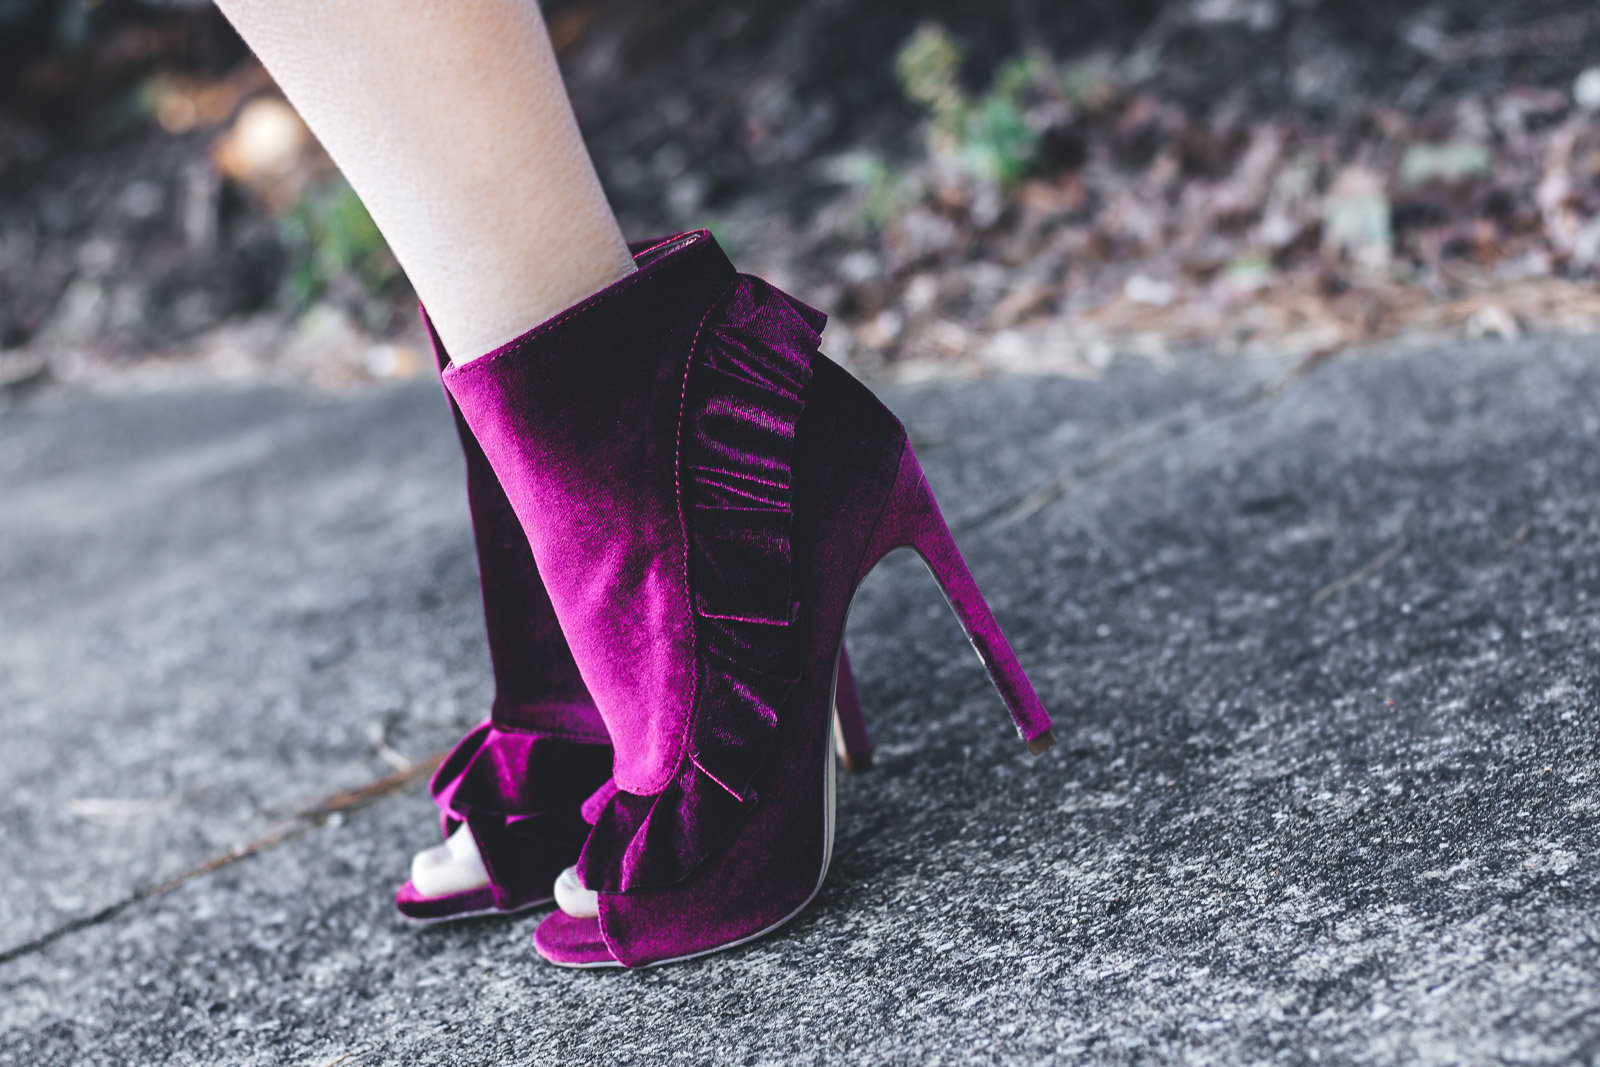 Velvet shoes with ruffles take any holiday outfit to the next level.